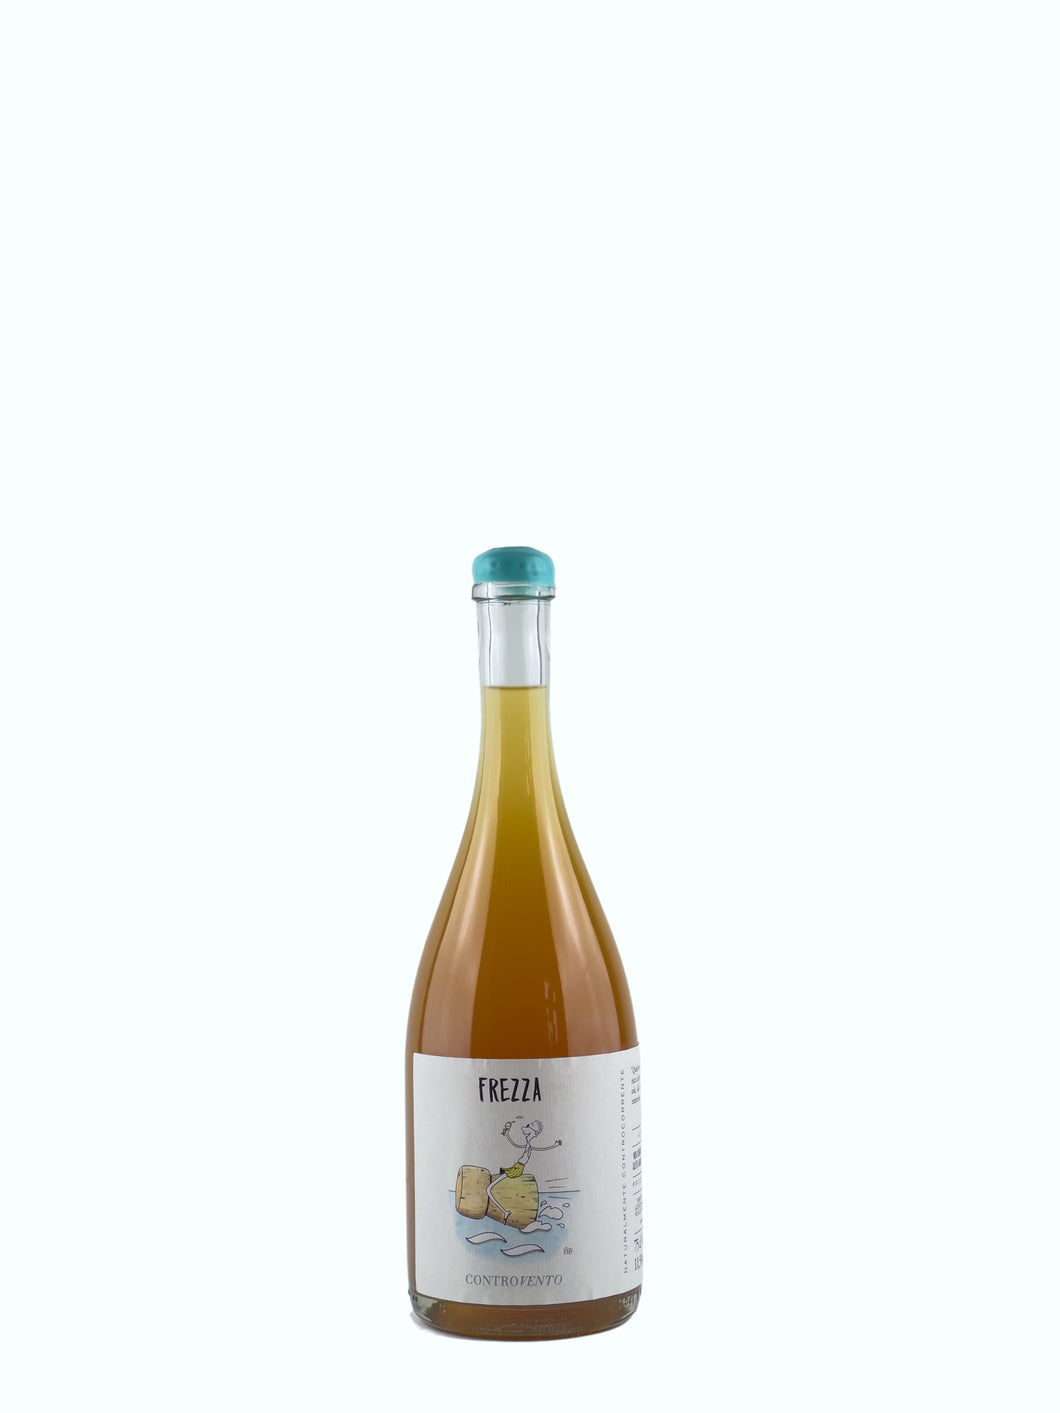 Bottle of Frezza, a Natural Wine produced by Controvento with Trebbiano, Passerina, Fiano and Malvasia grapes.